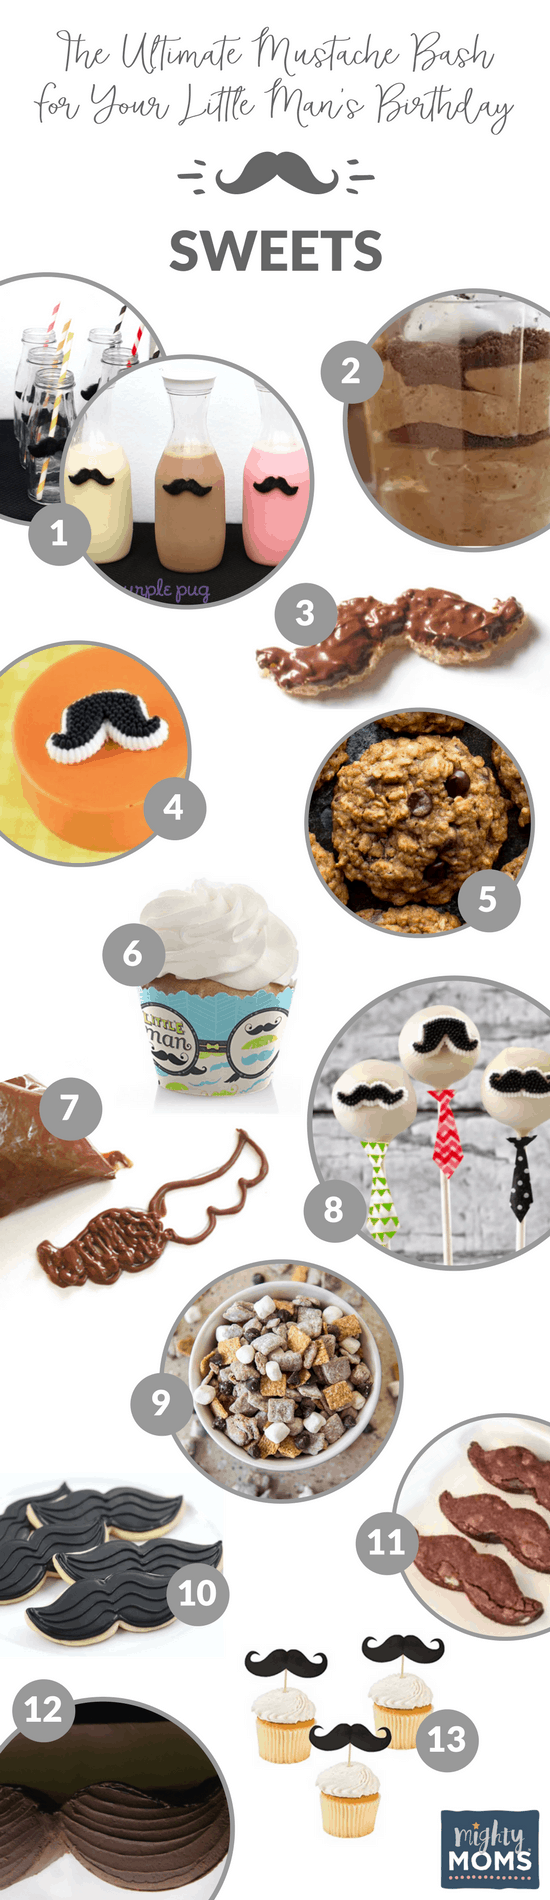 13 Mustache Bash Sweet Solutions - MightyMoms.club